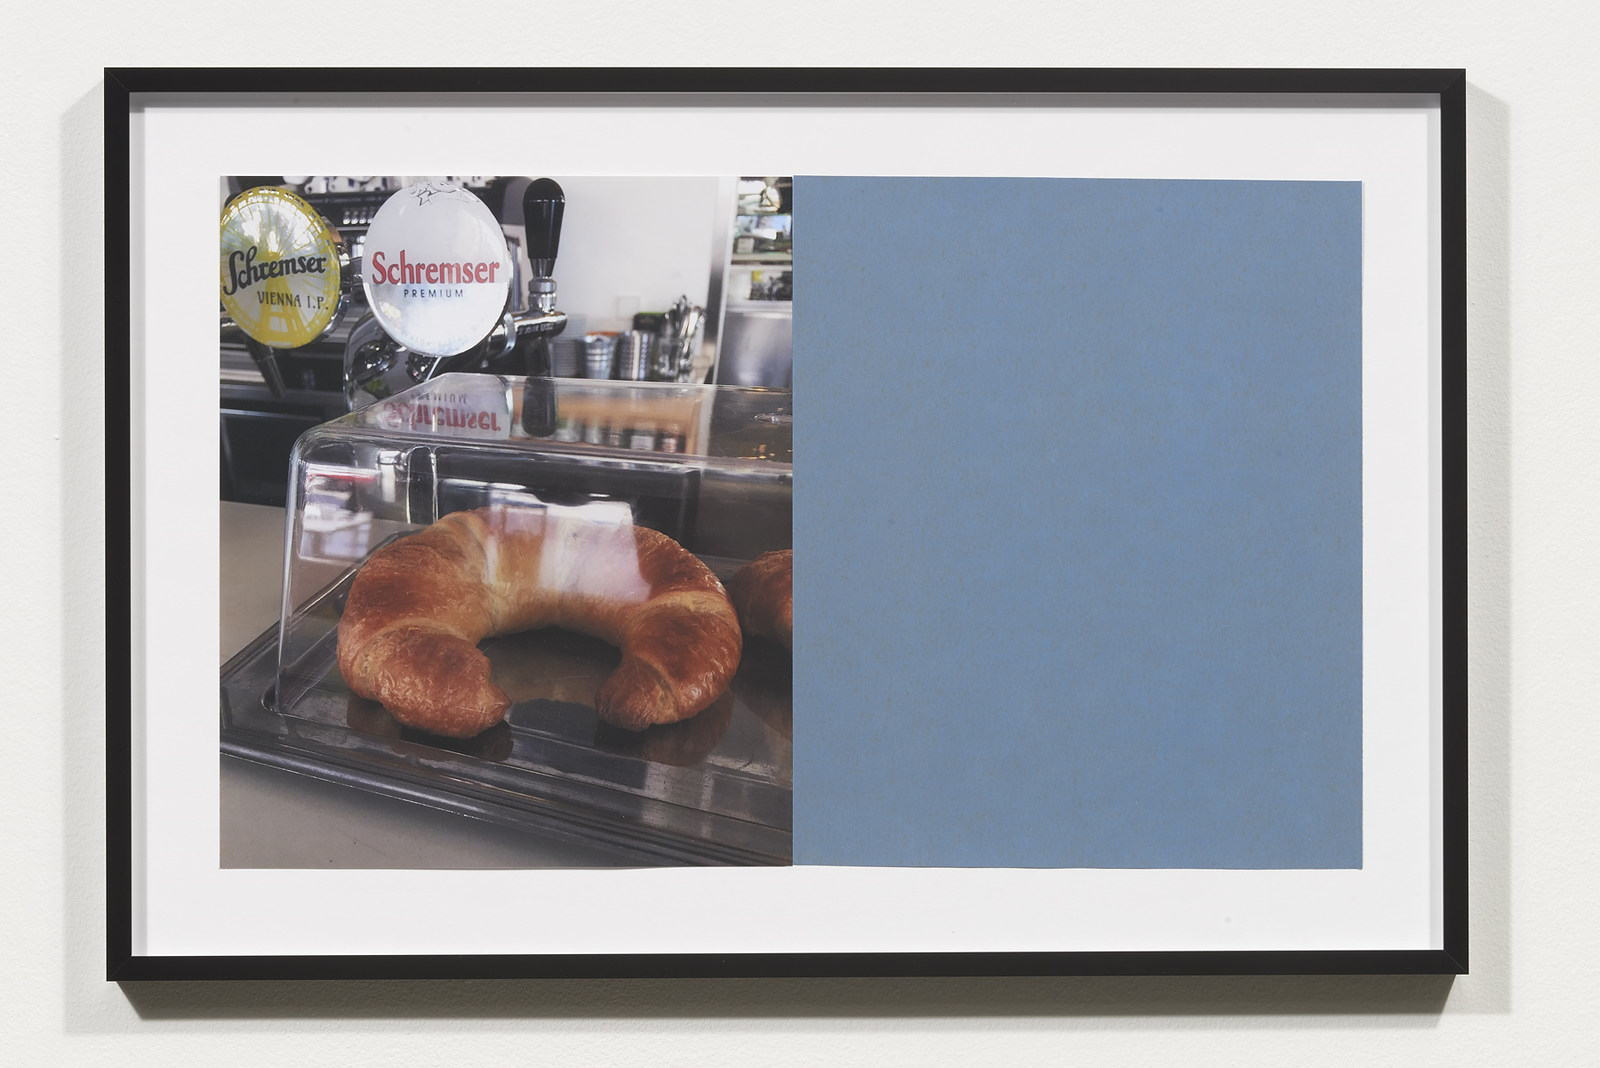 Wermers_Croissants & Architecture #10, 2016_C-print, sandpaper sheet, framed_14 3_8 x 21 1_2 in_NW00051PG